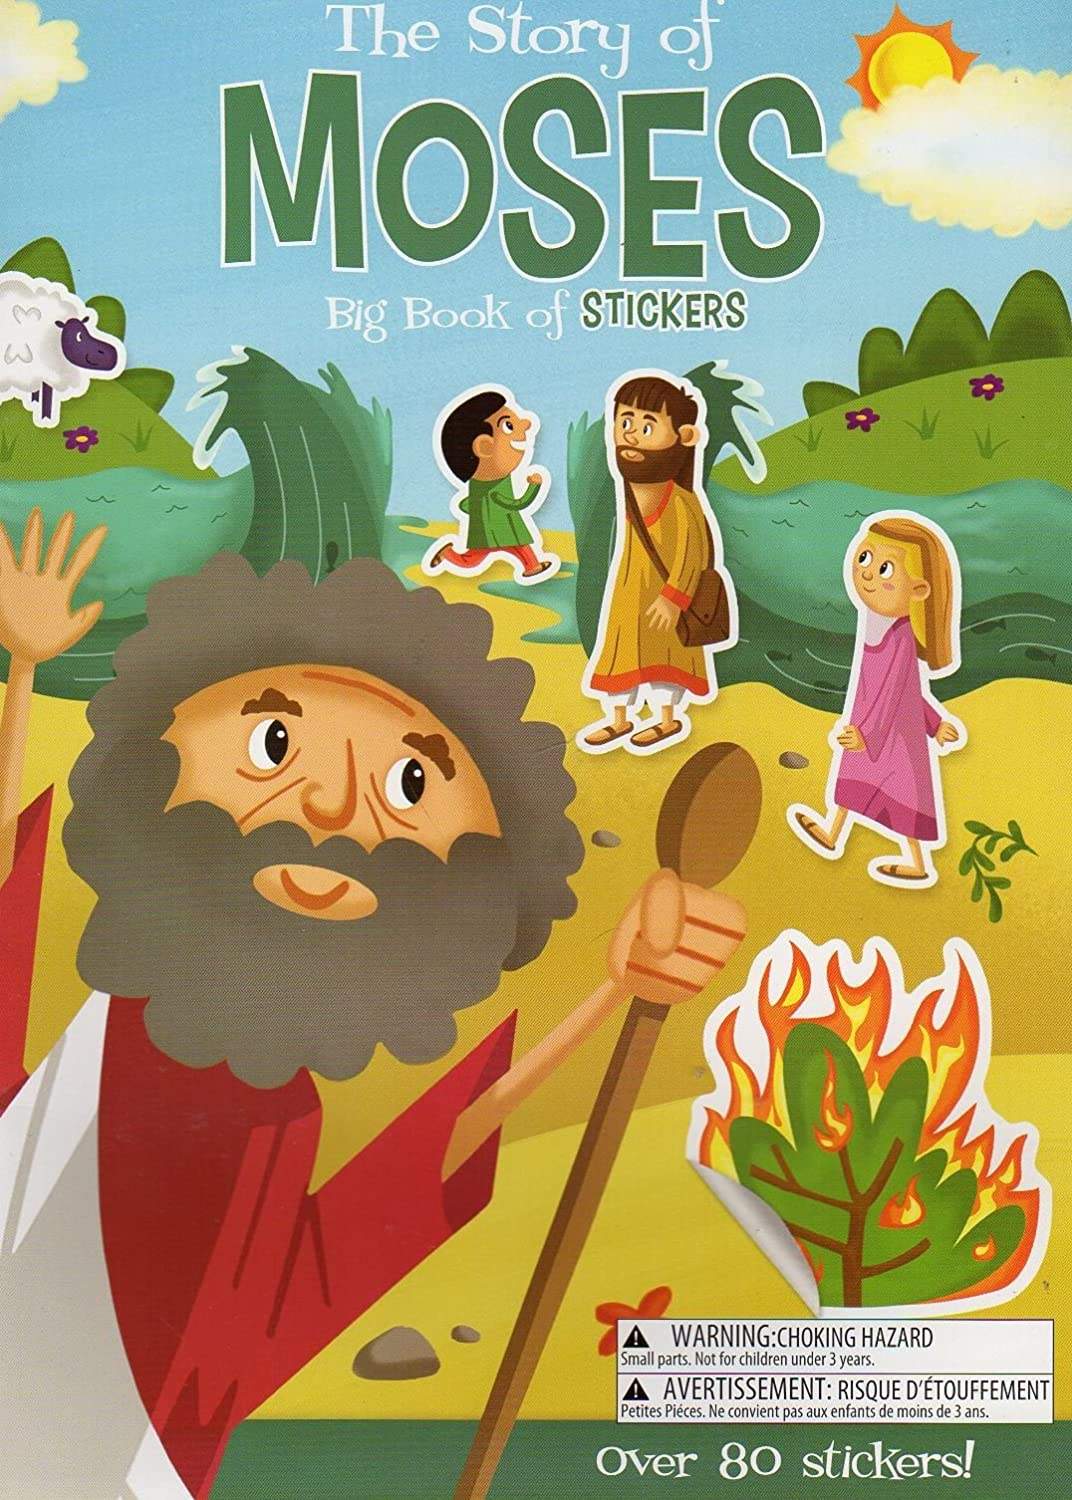 Big Book of Stickers The Story of Moses Activity Book Includes Over 80 Stickers The Clever Factory